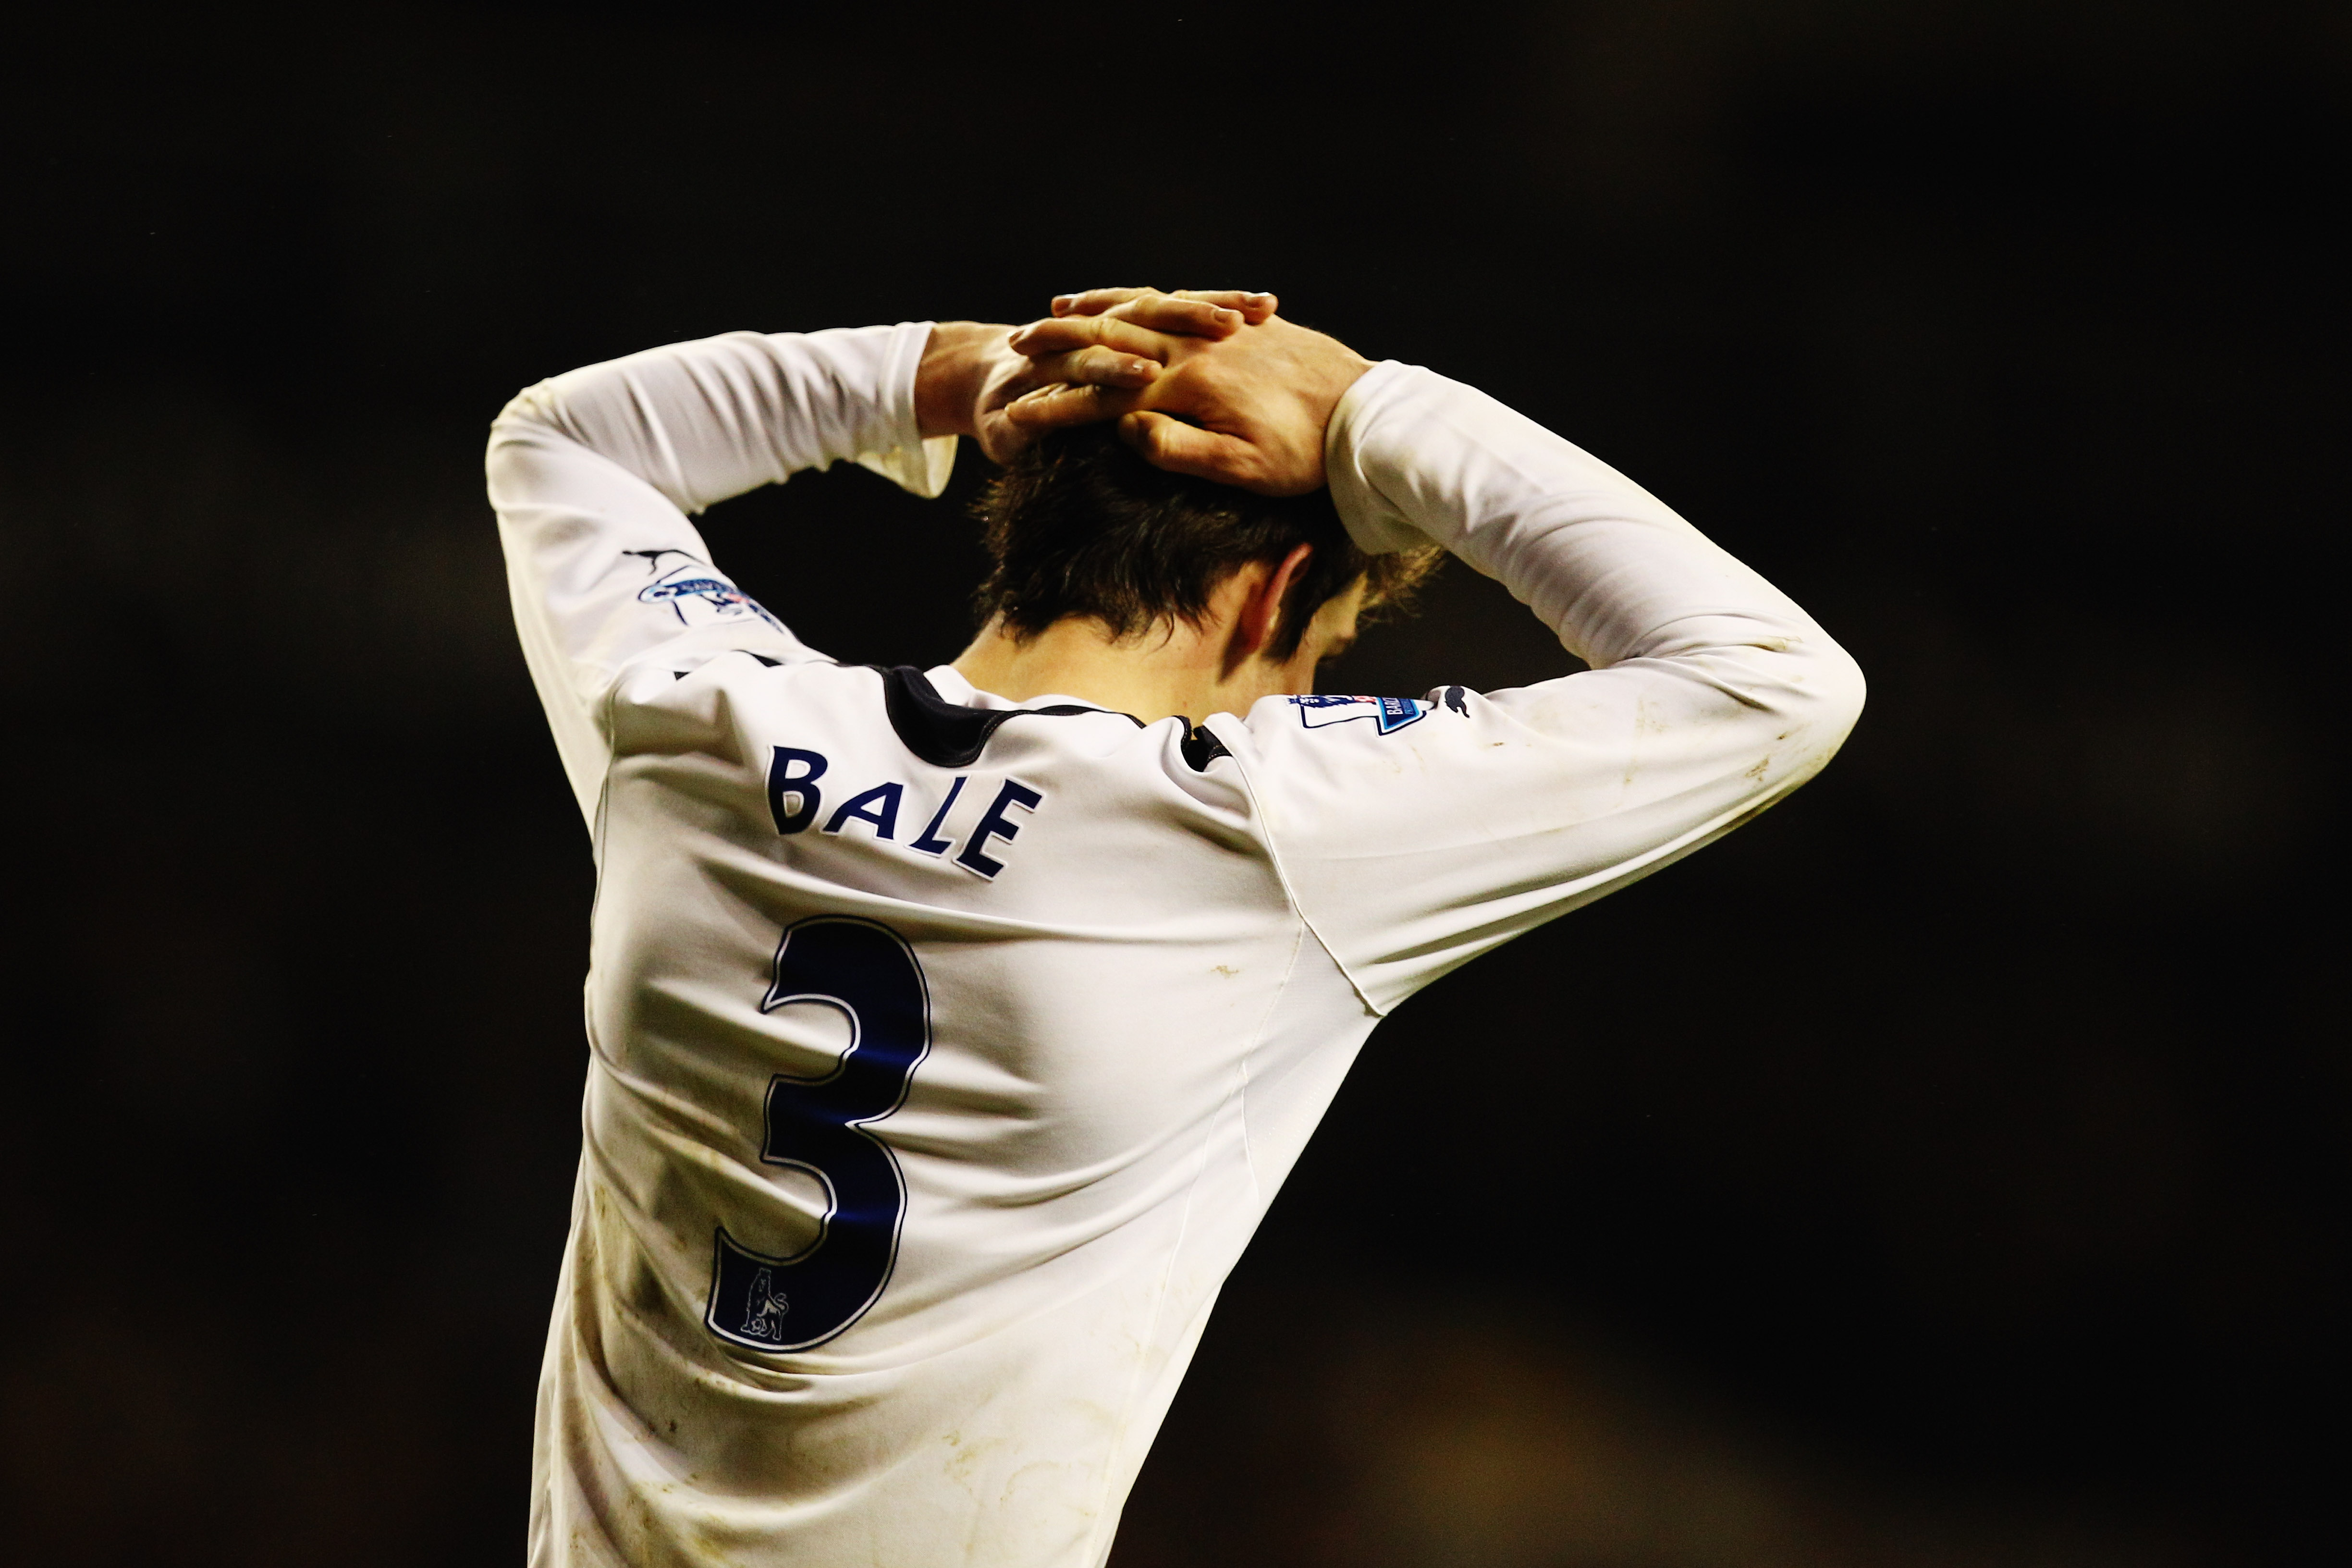 LONDON, UNITED KINGDOM - JANUARY 01:  Gareth Bale of Tottenham Hotspur reacts during the Barclays Premier League match between Tottenham Hotspur and Fulham at White Hart Lane on January 1, 2011 in London, England.  (Photo by Richard Heathcote/Getty Images